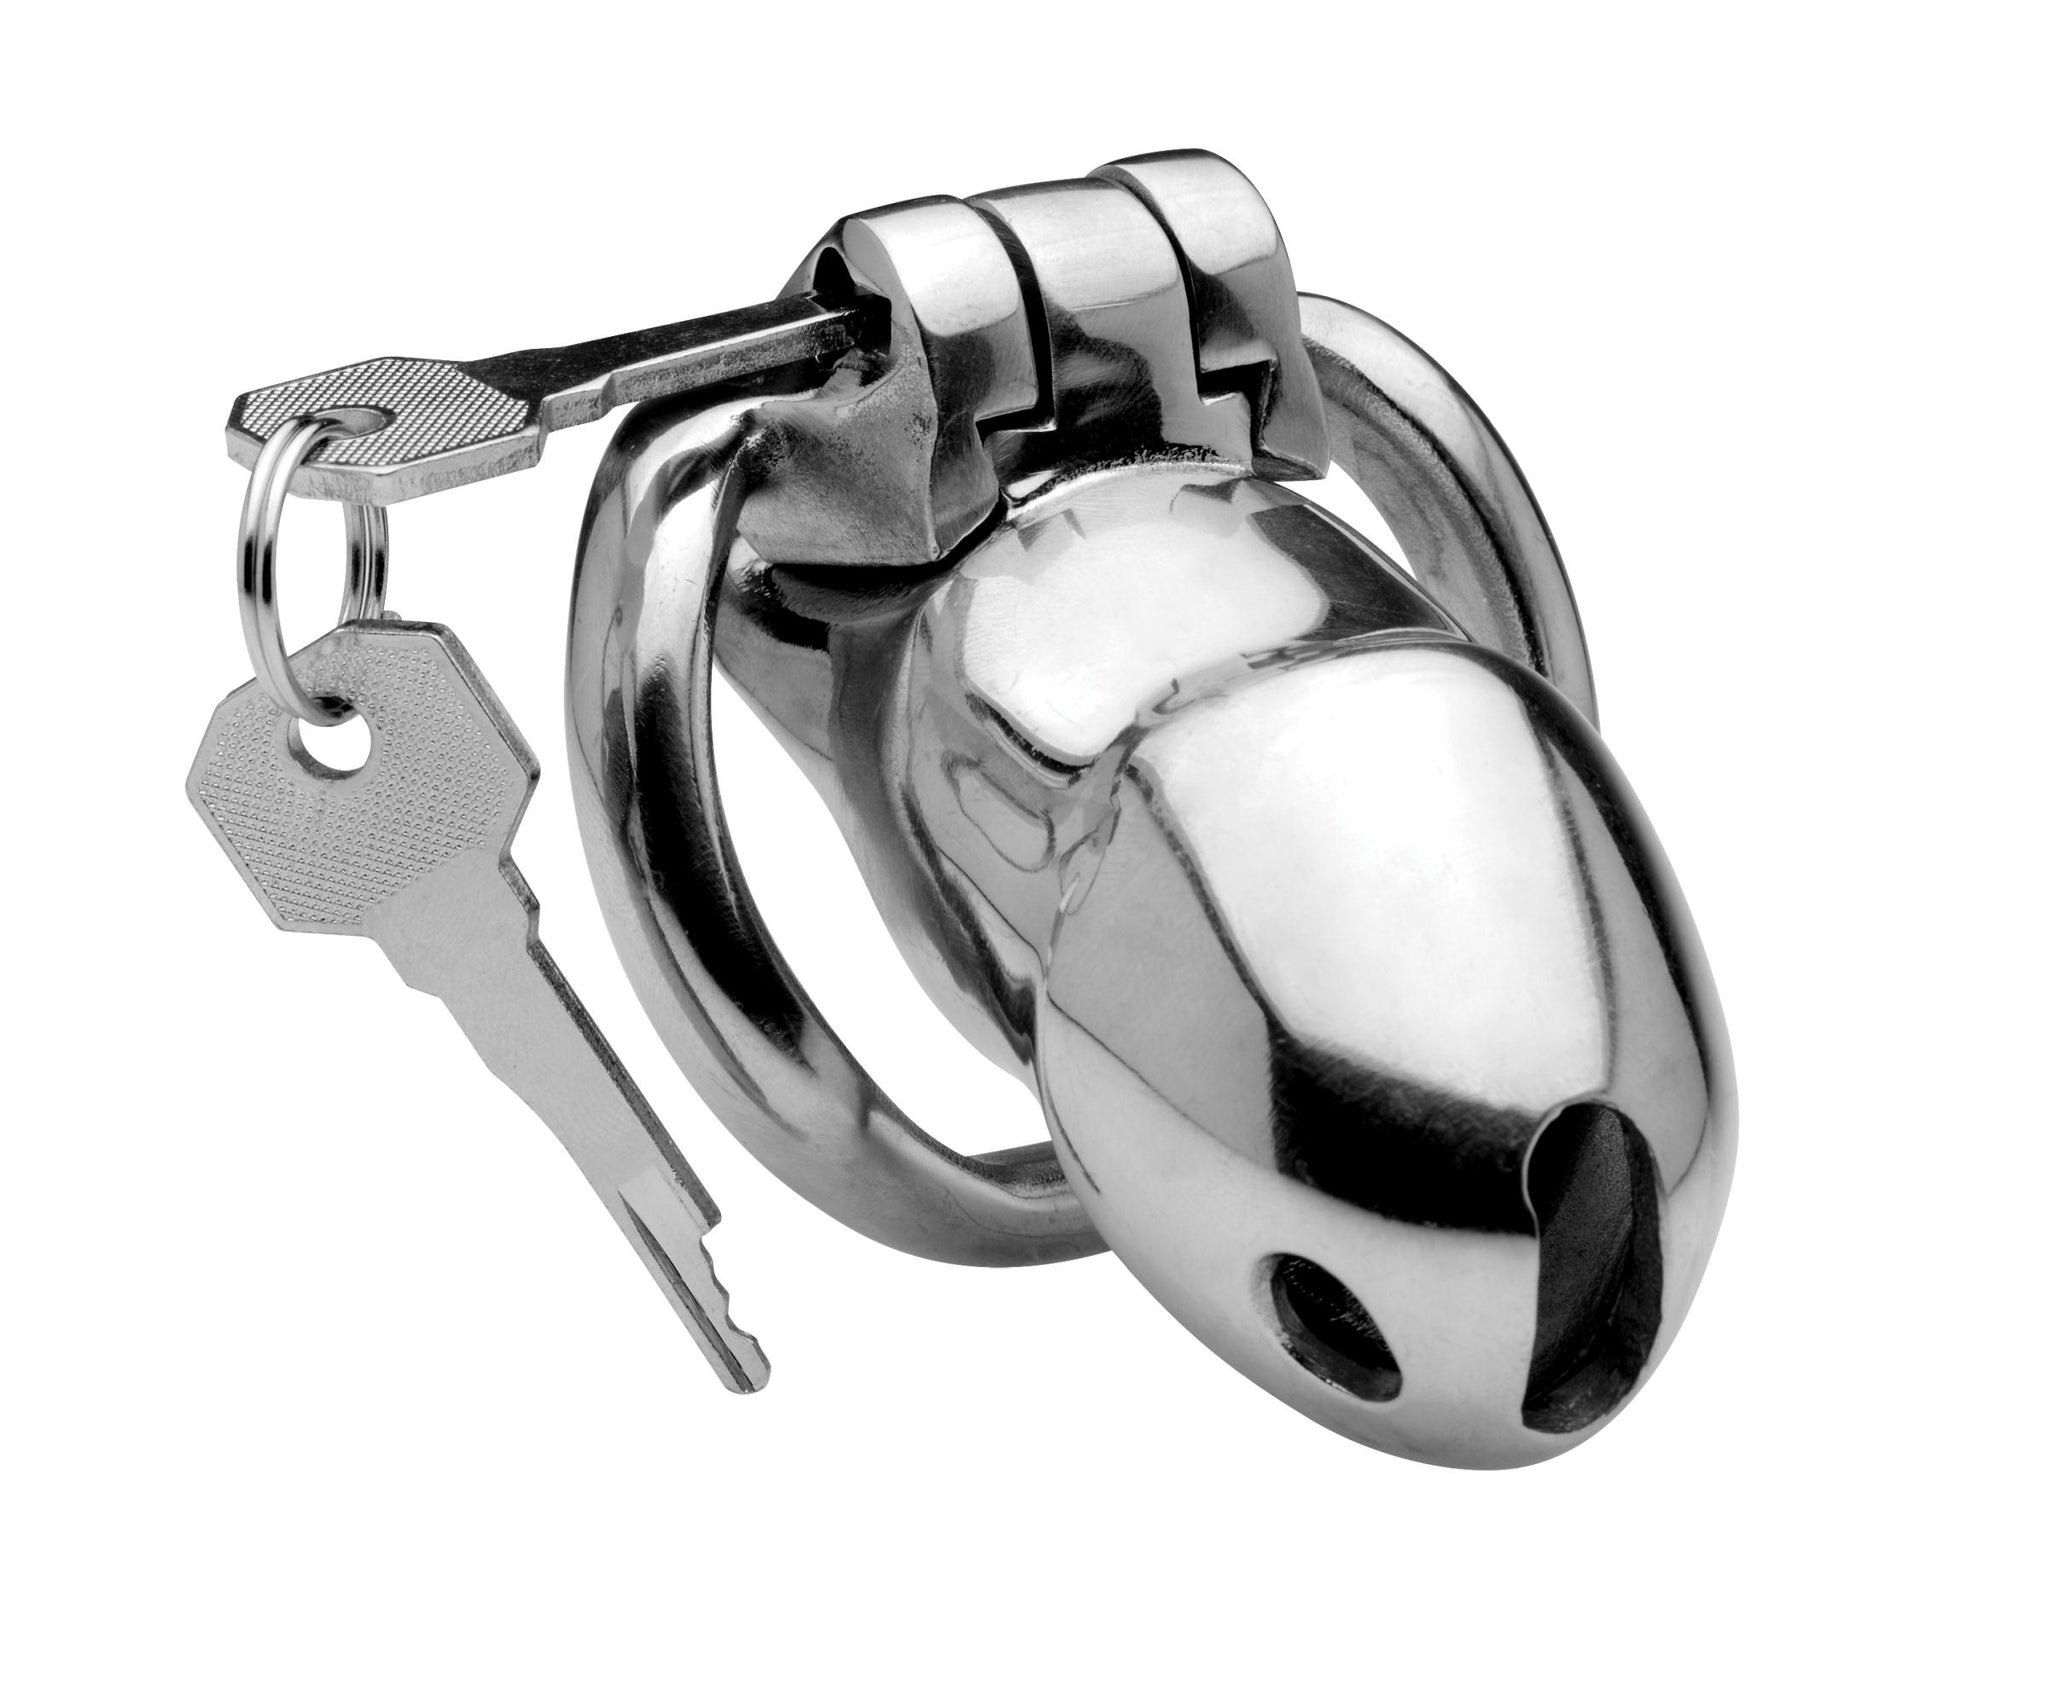 Rikers 24-7 Stainless Steel Locking Chastity Cage